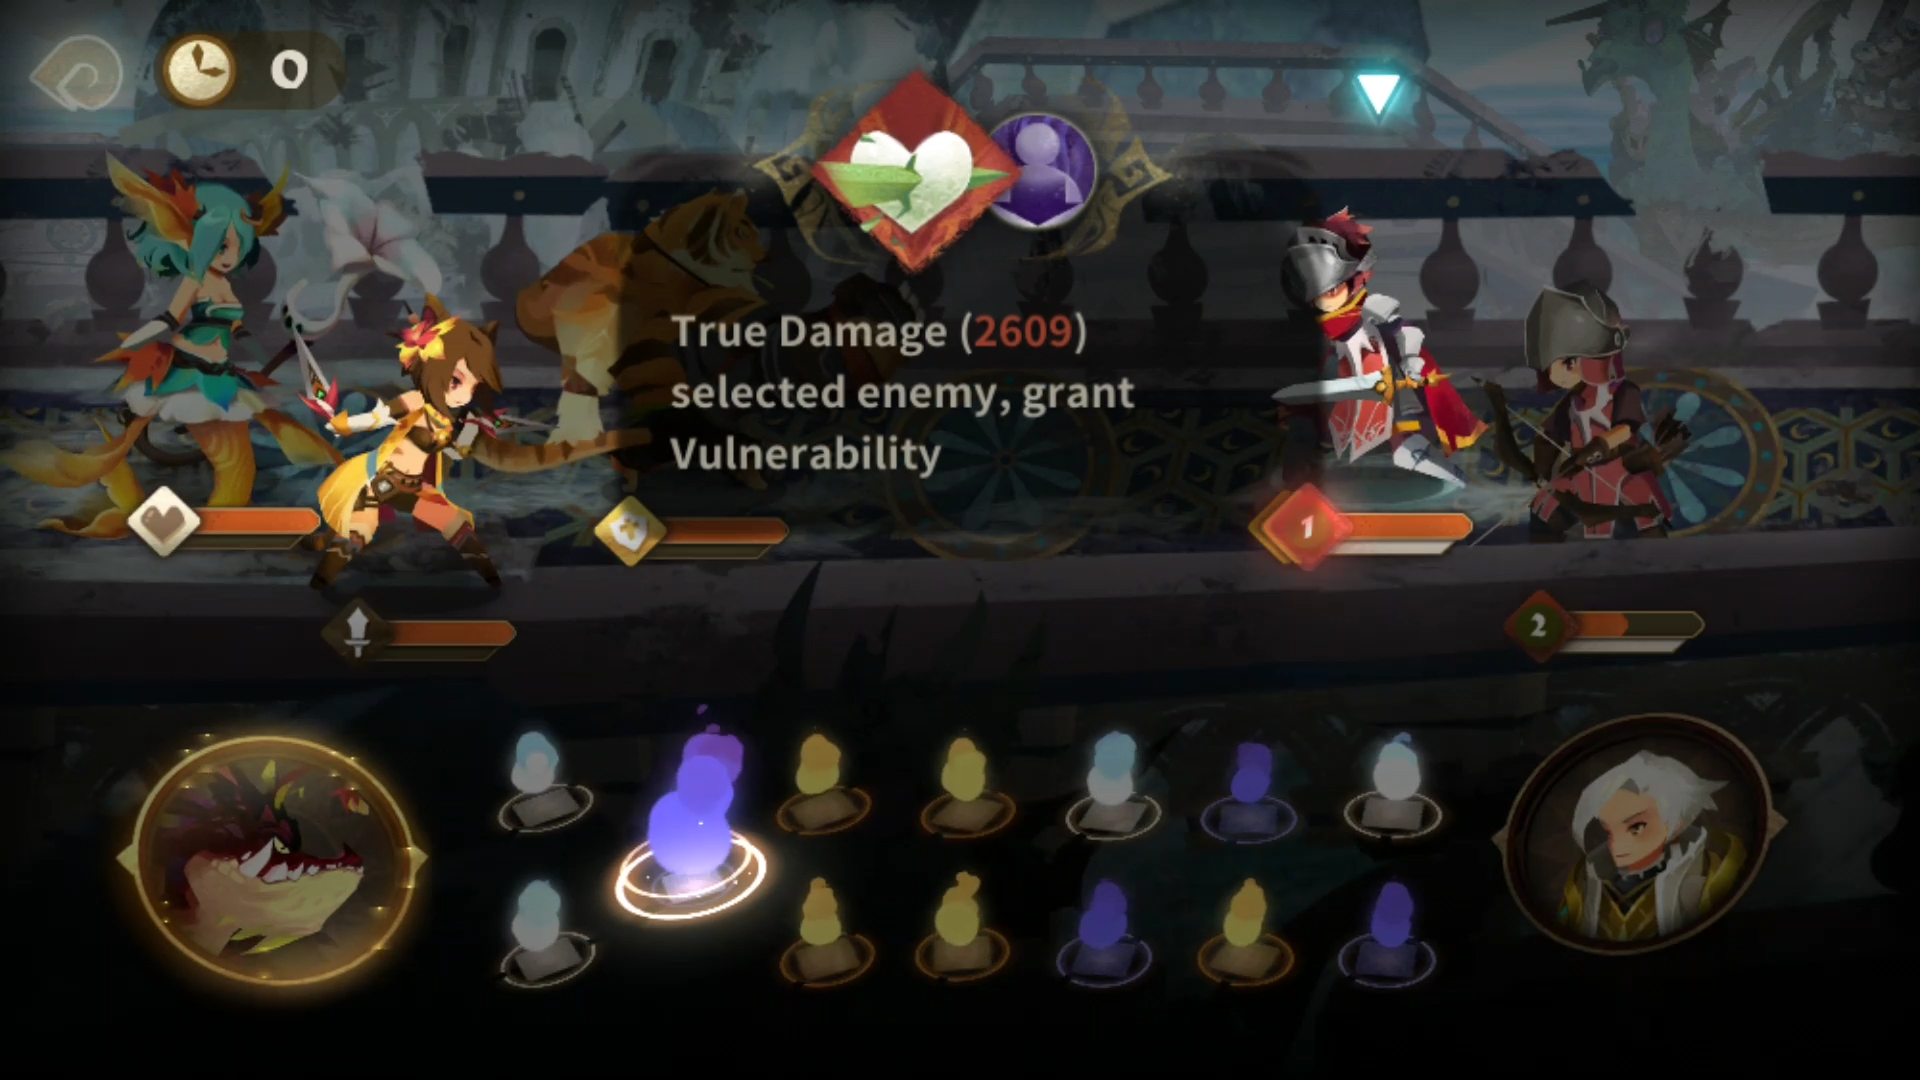 Combat Guide attacking